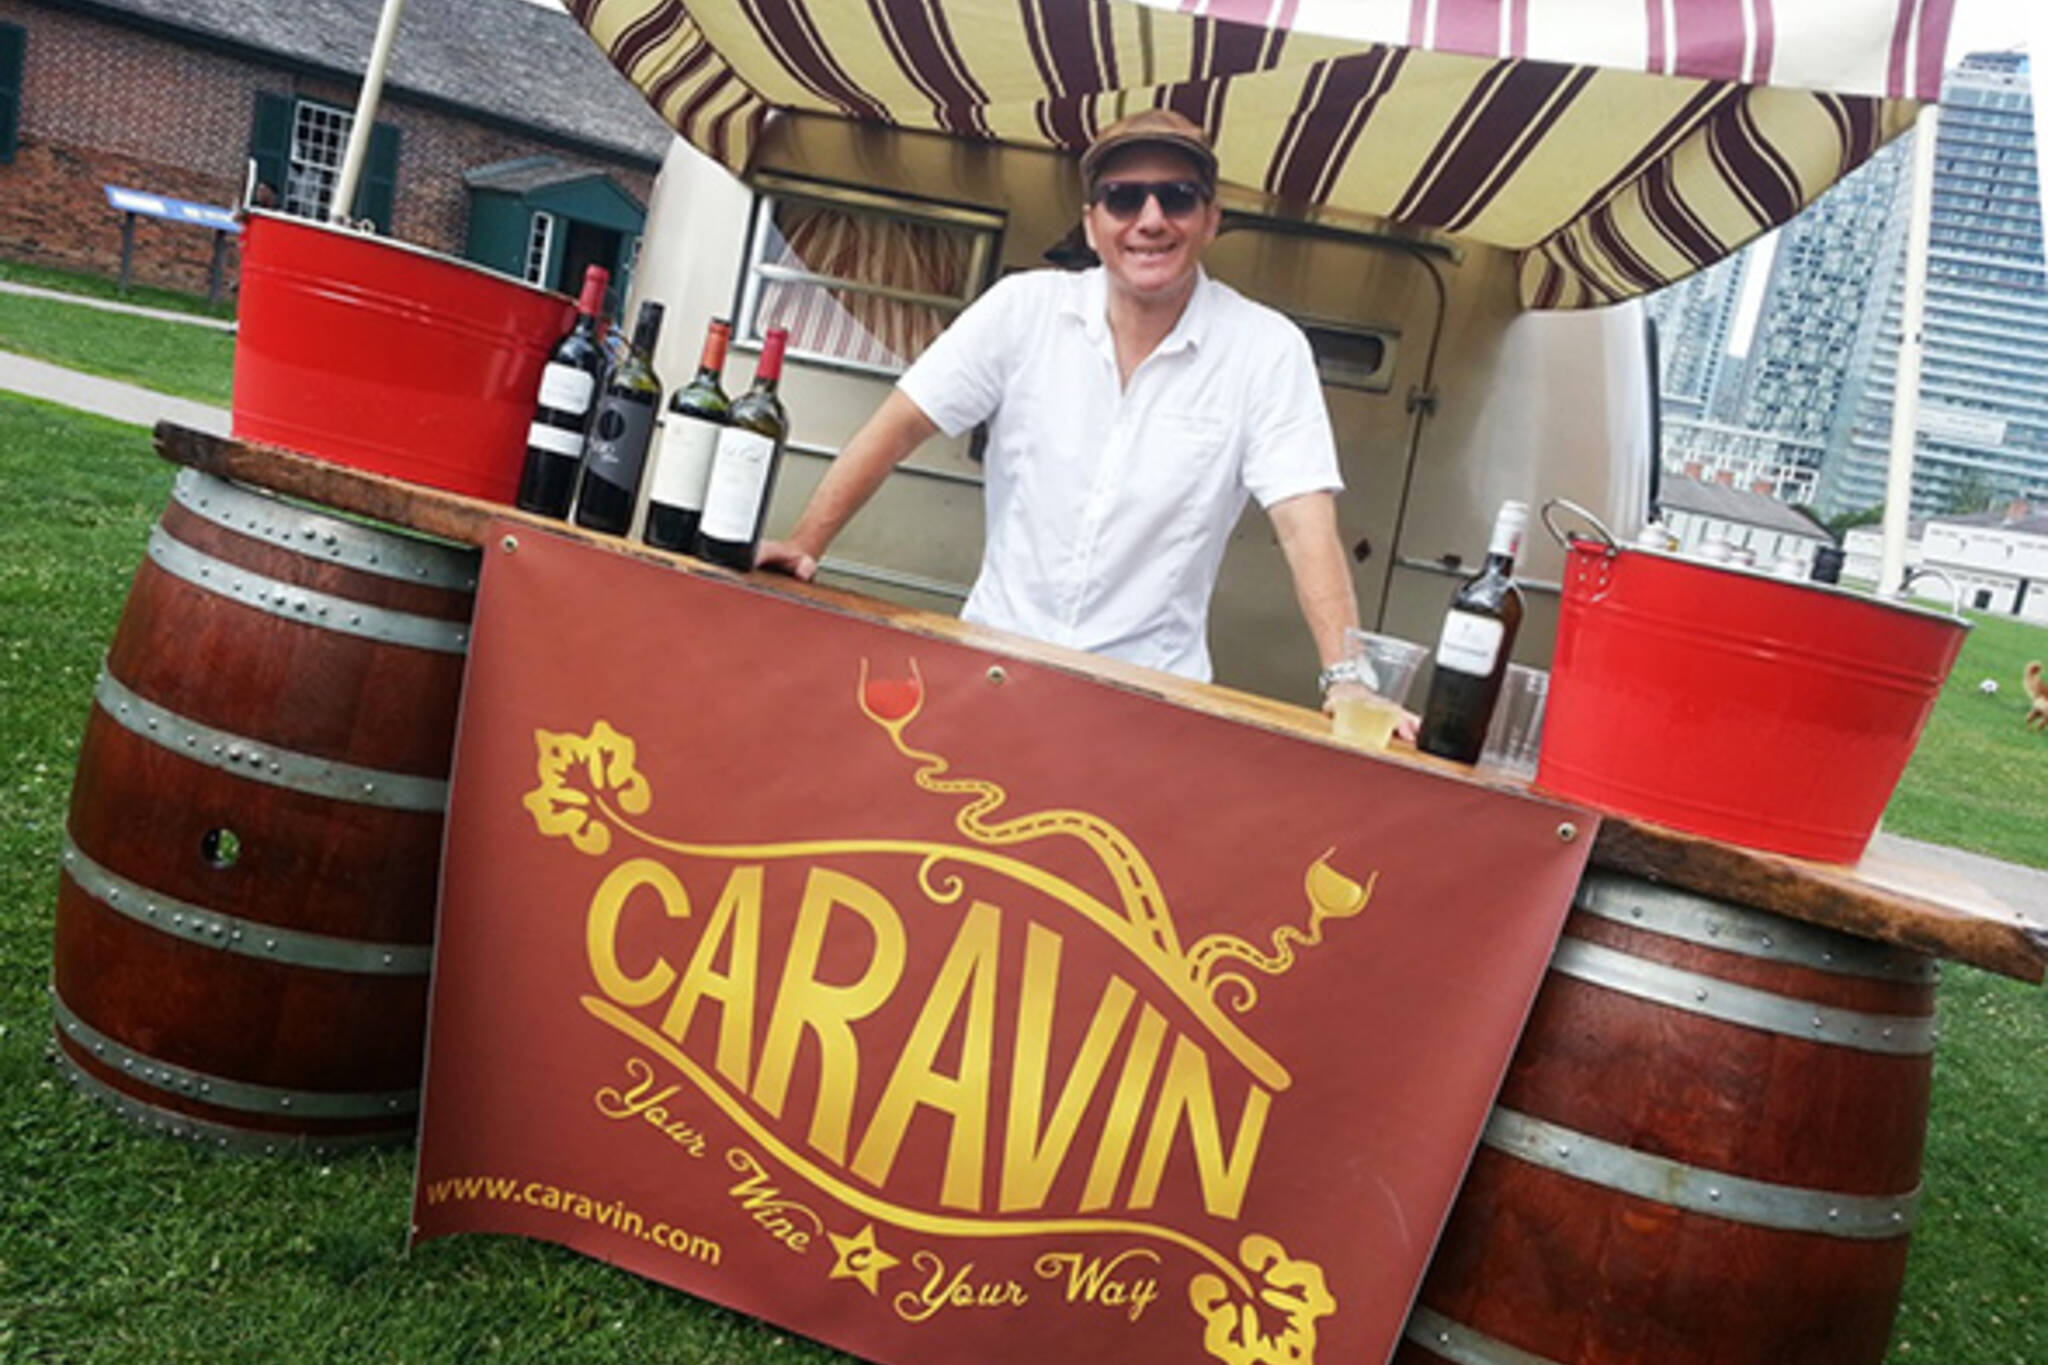 Caravin Mobile Wine Bar